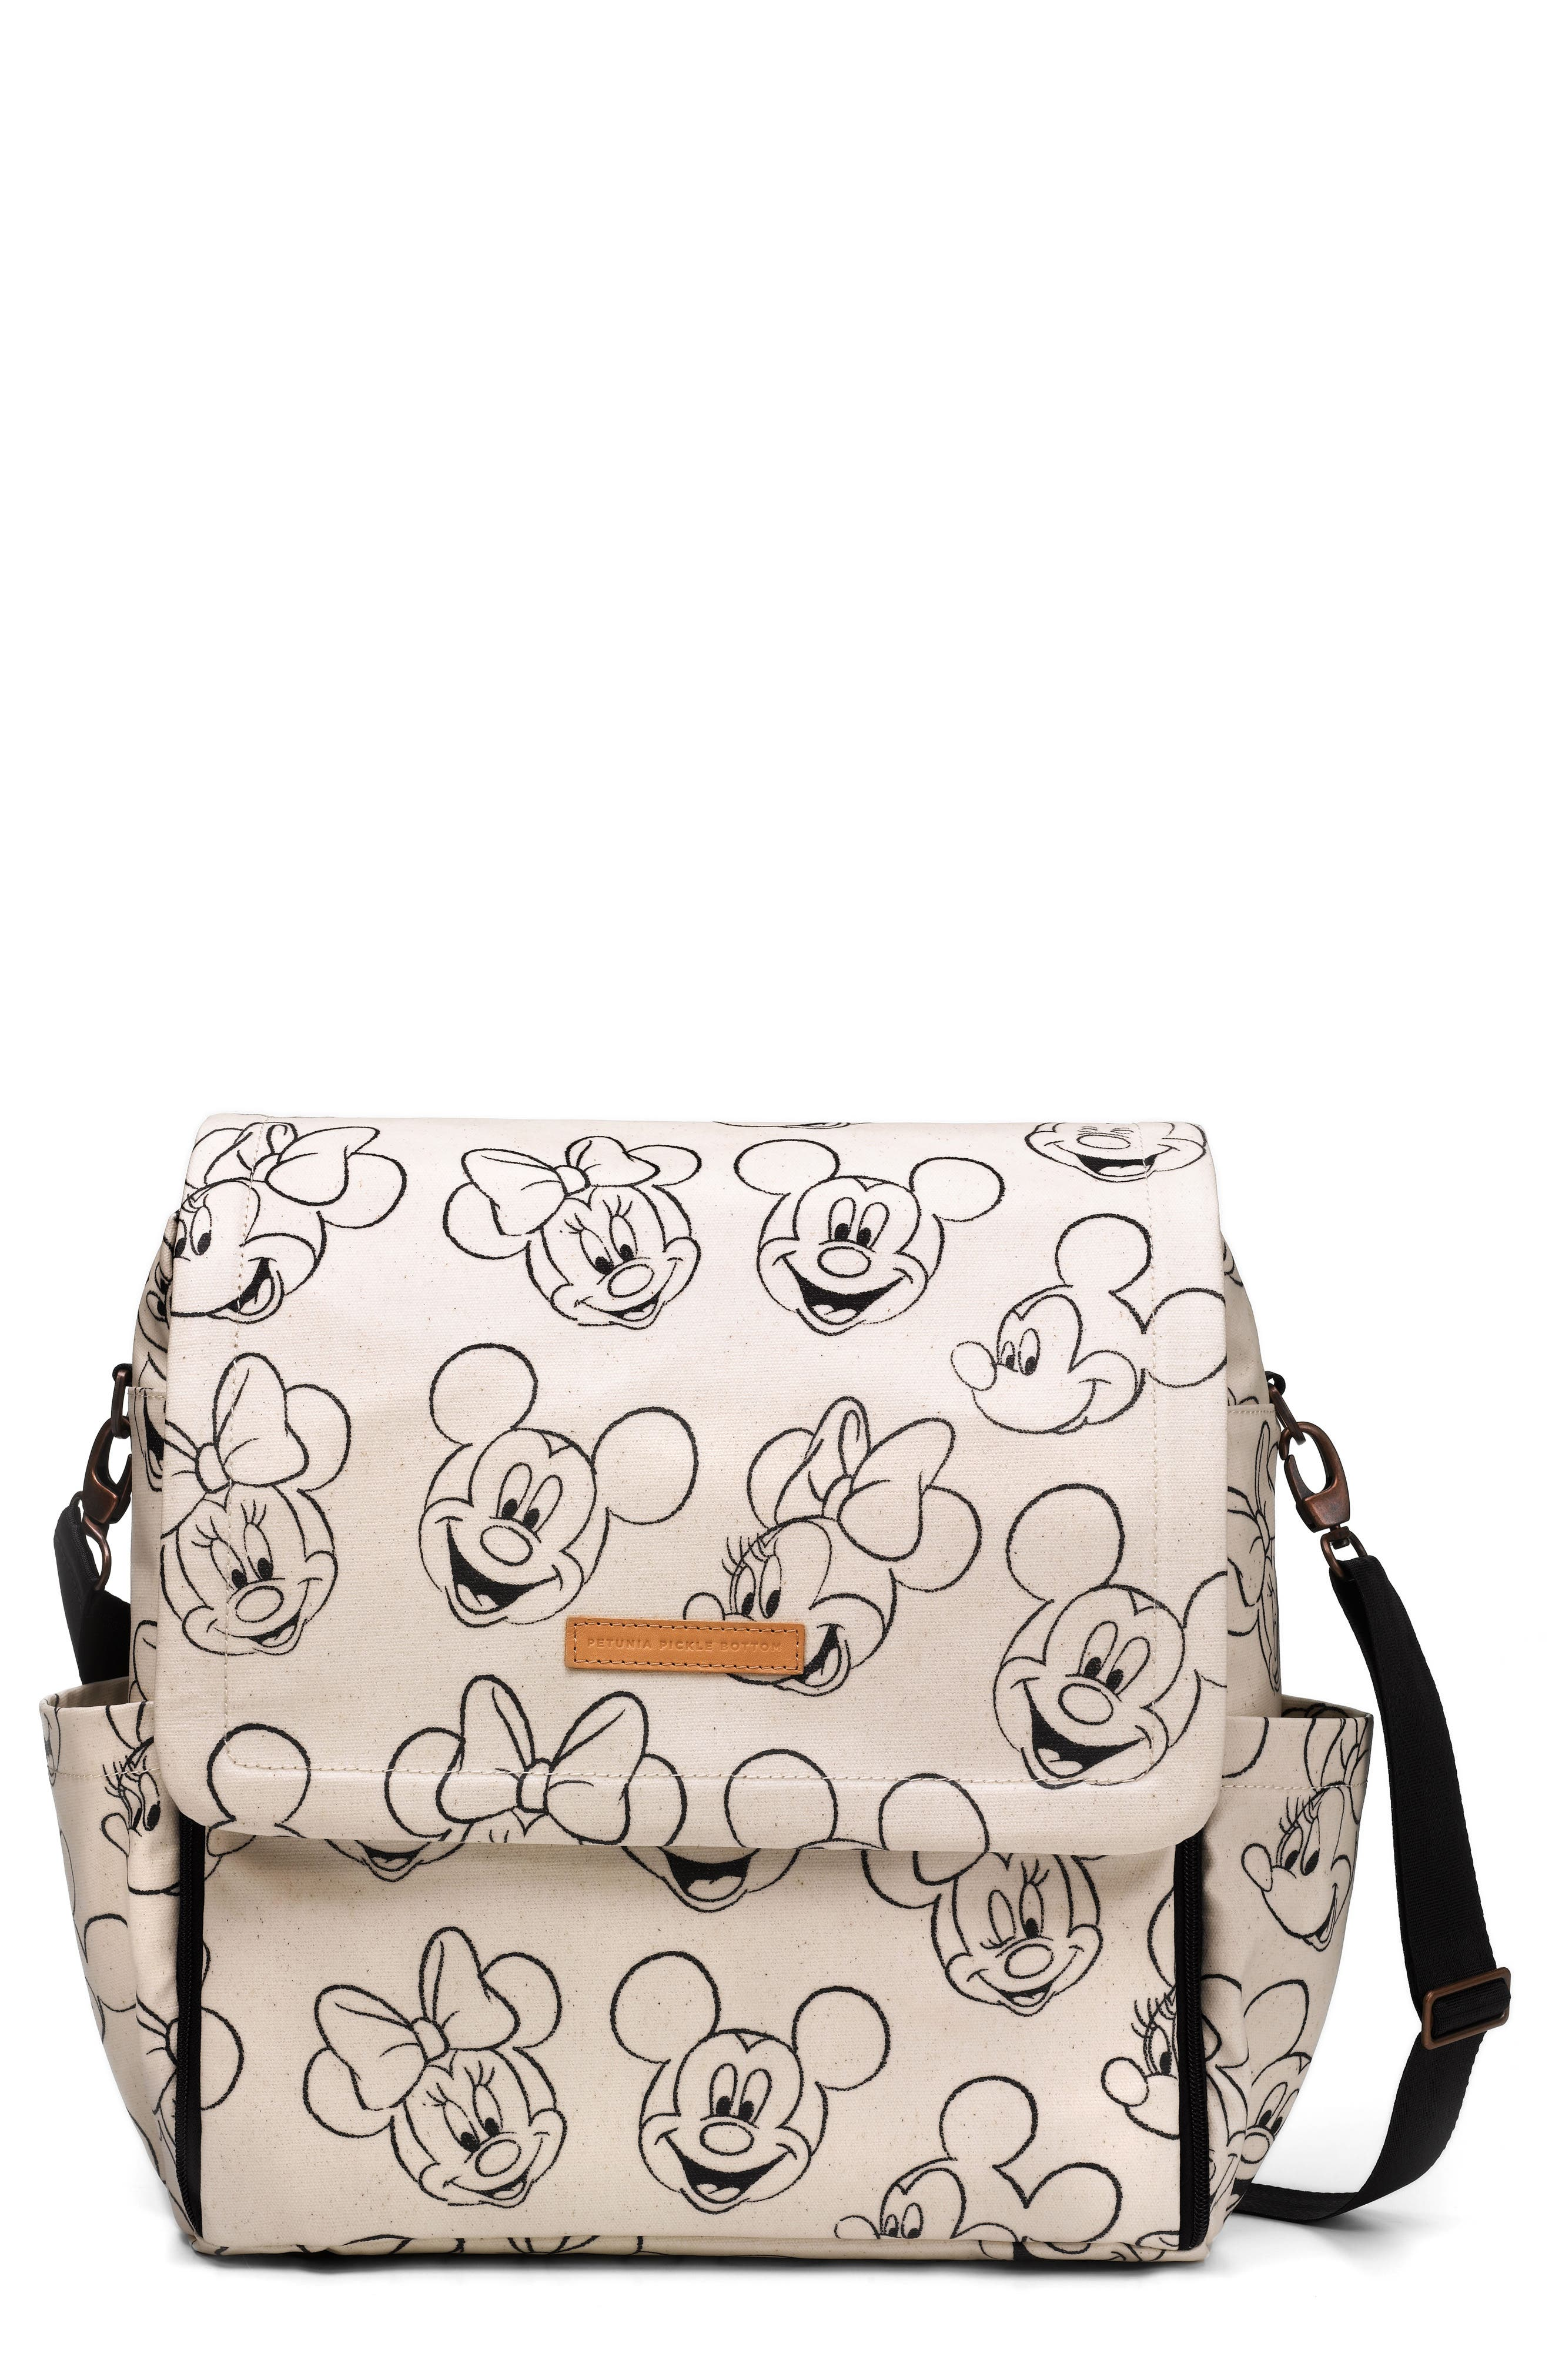 Boxy Backpack - Disney Diaper Bag,                         Main,                         color, SKETCHBOOK MICKEY AND MINNIE